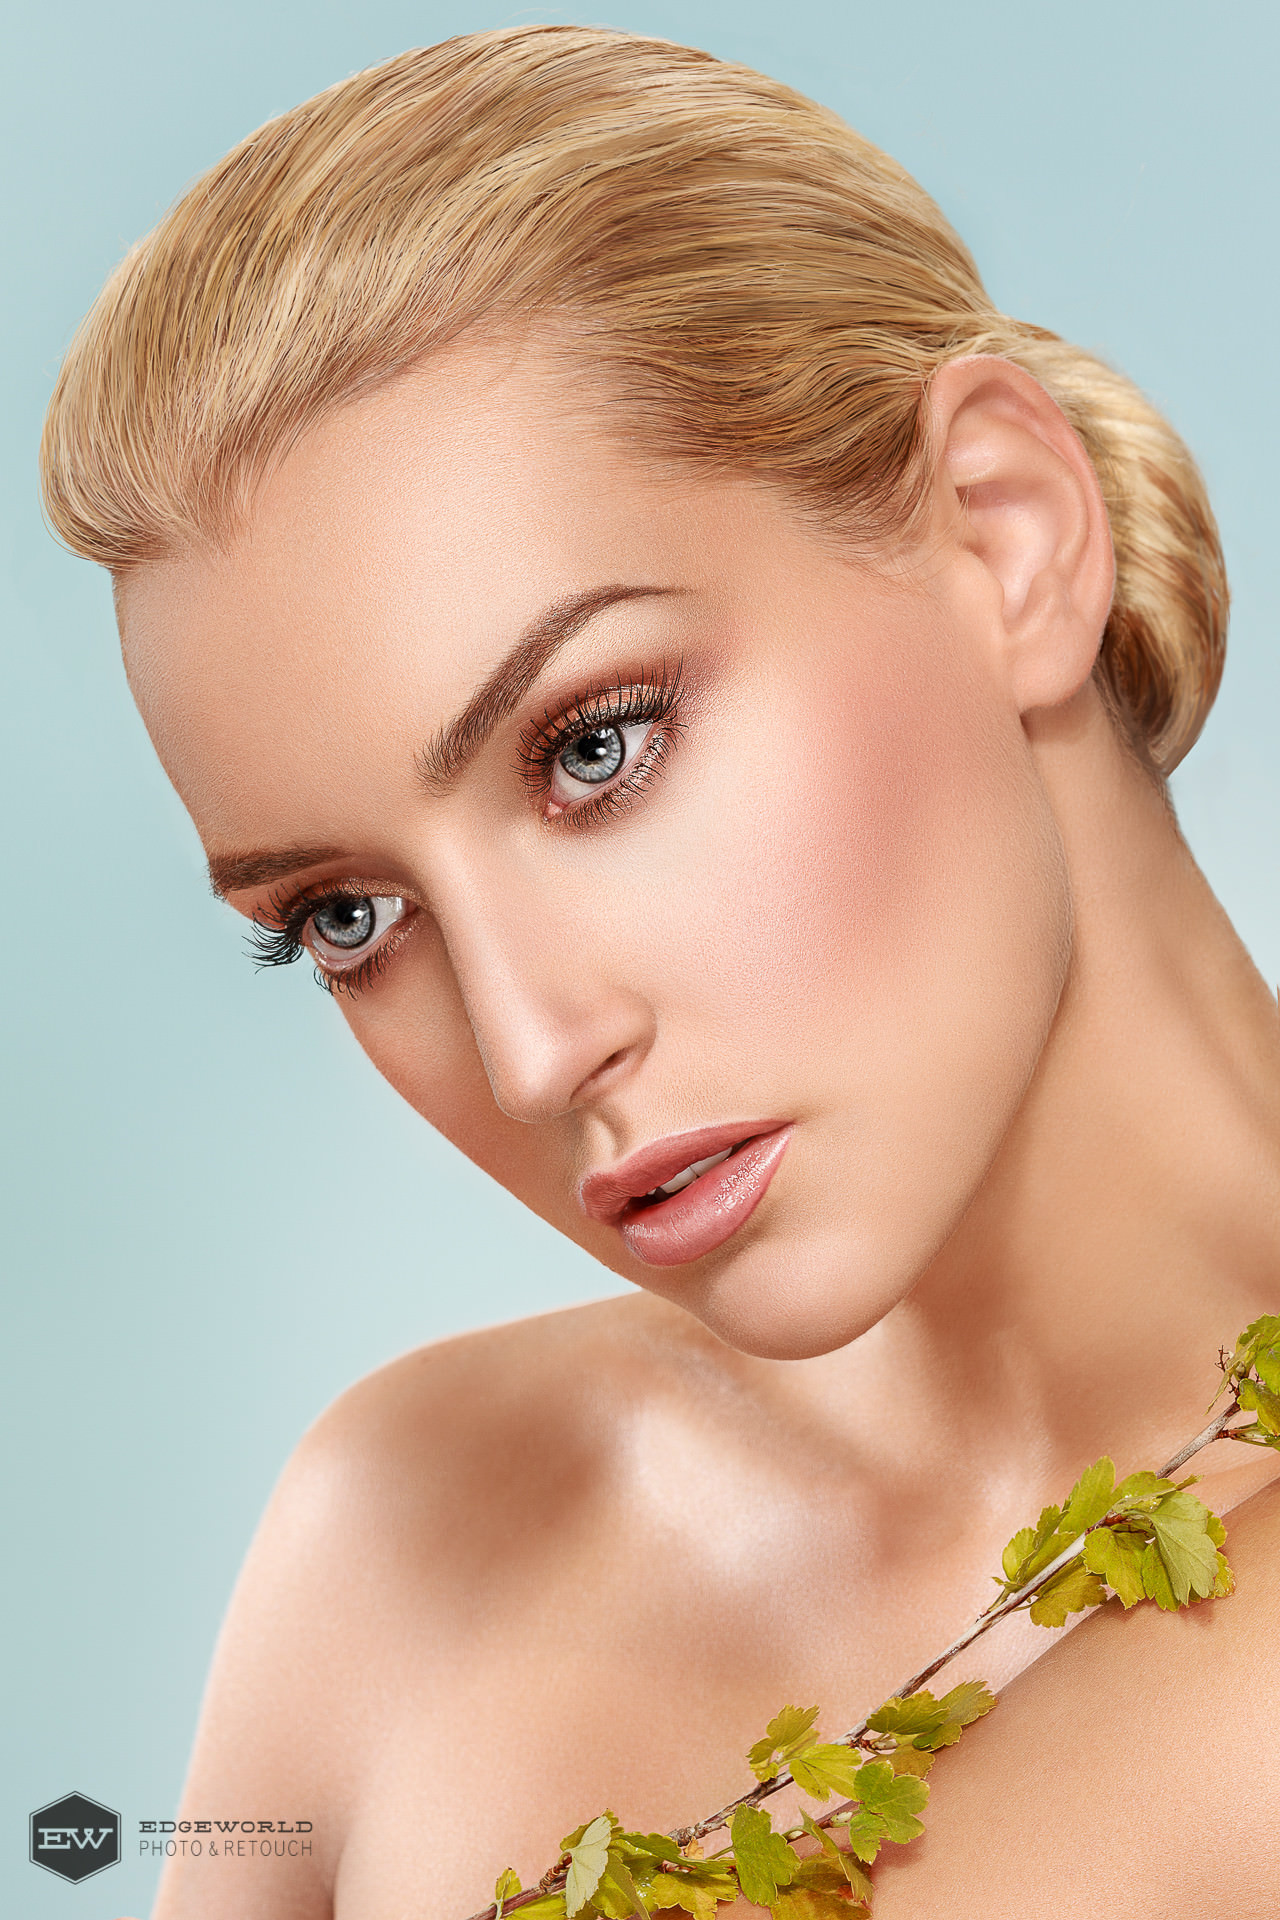 Boutique Retouching health_woman_blonde_retouched BOUTiQUE RETOUCHING - Premium Retouching - High-End Retouching